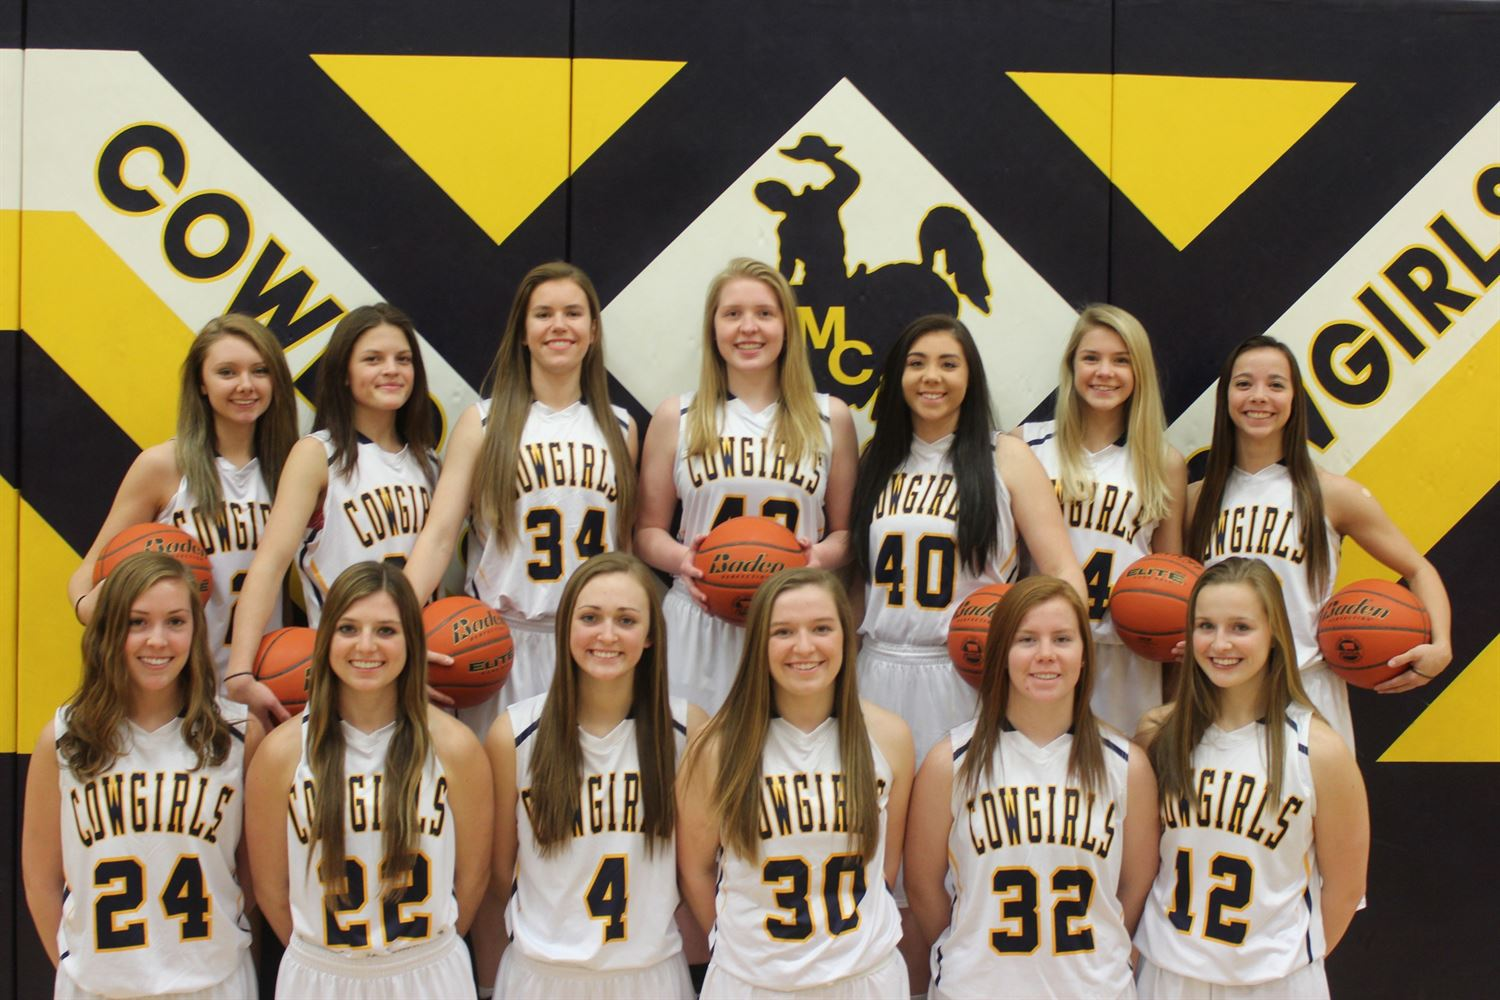 Custer County High School - Custer County Cowgirls Varsity Basketball